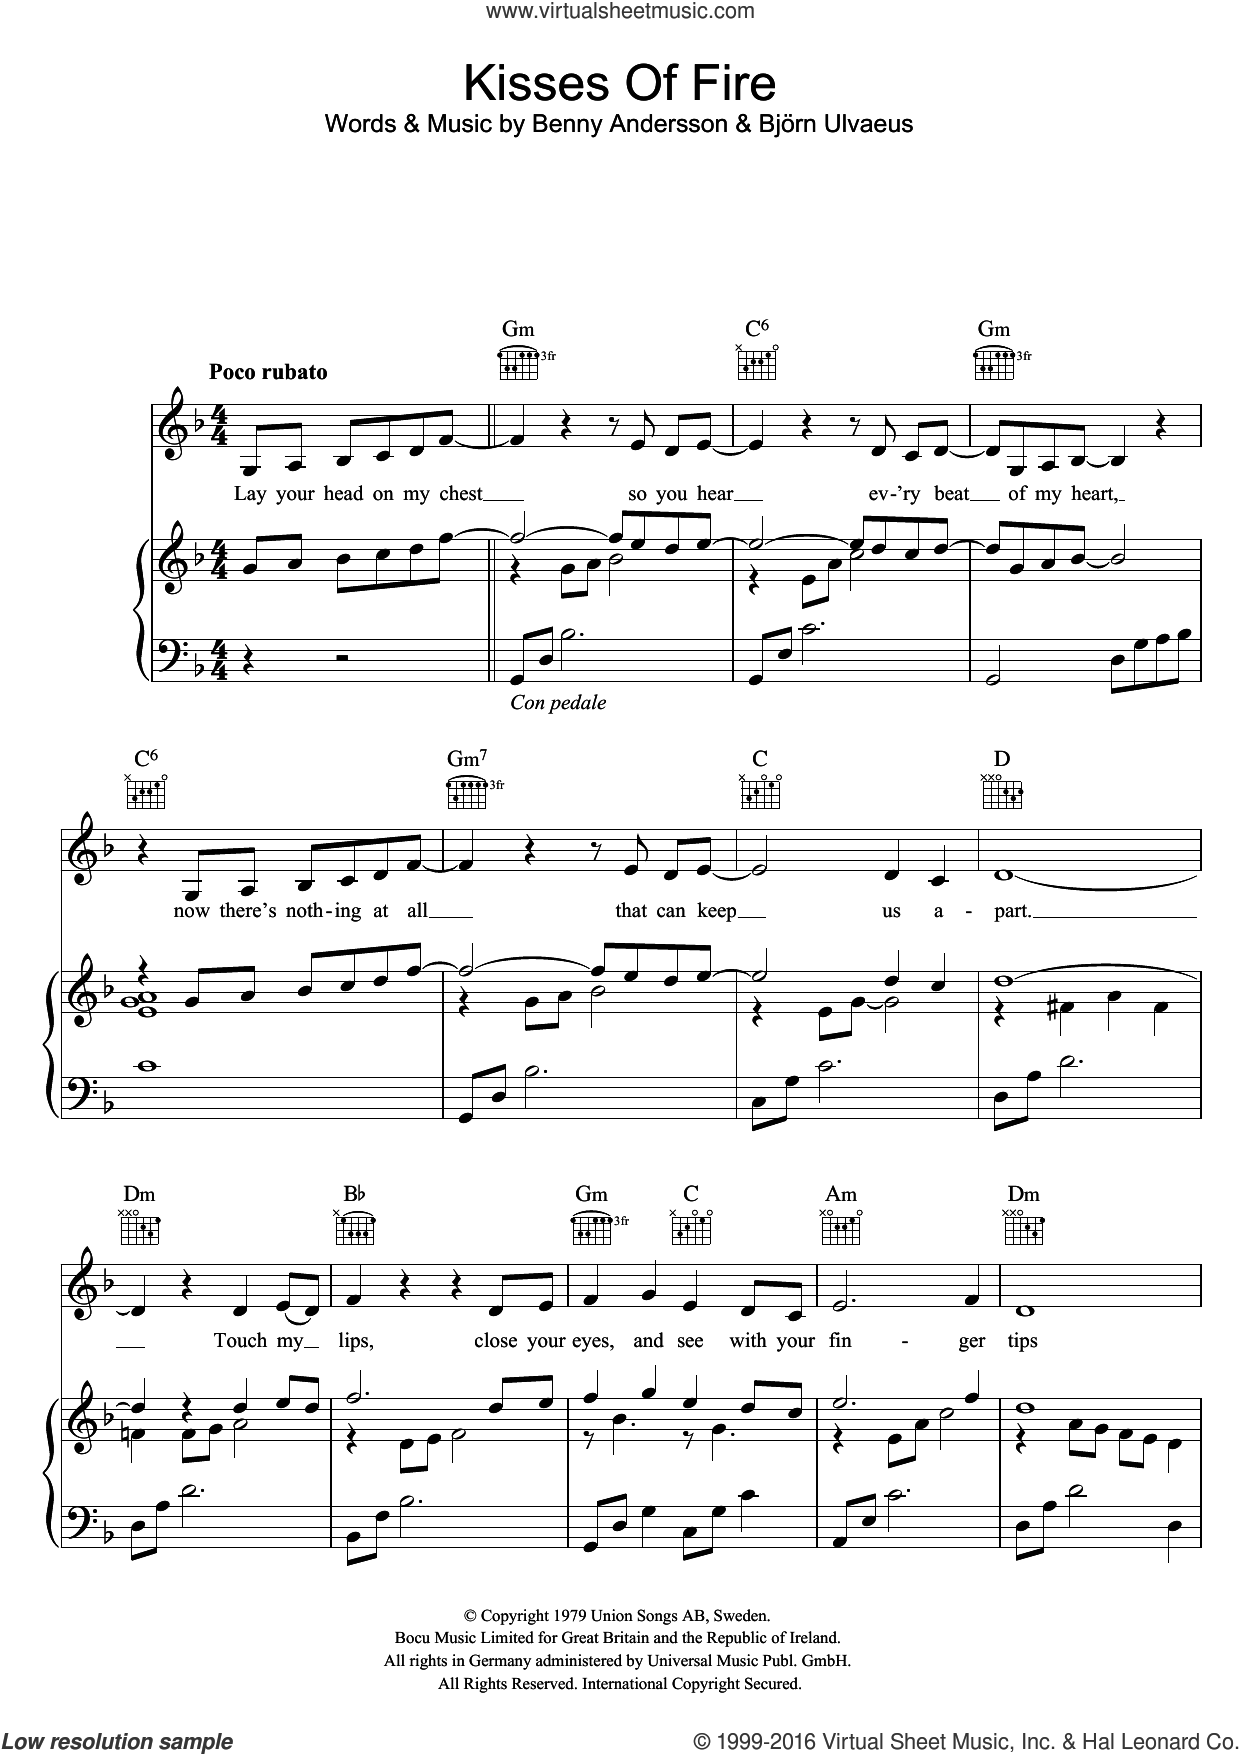 Kisses Of Fire sheet music for voice, piano or guitar by ABBA, Benny Andersson and Bjorn Ulvaeus, intermediate skill level